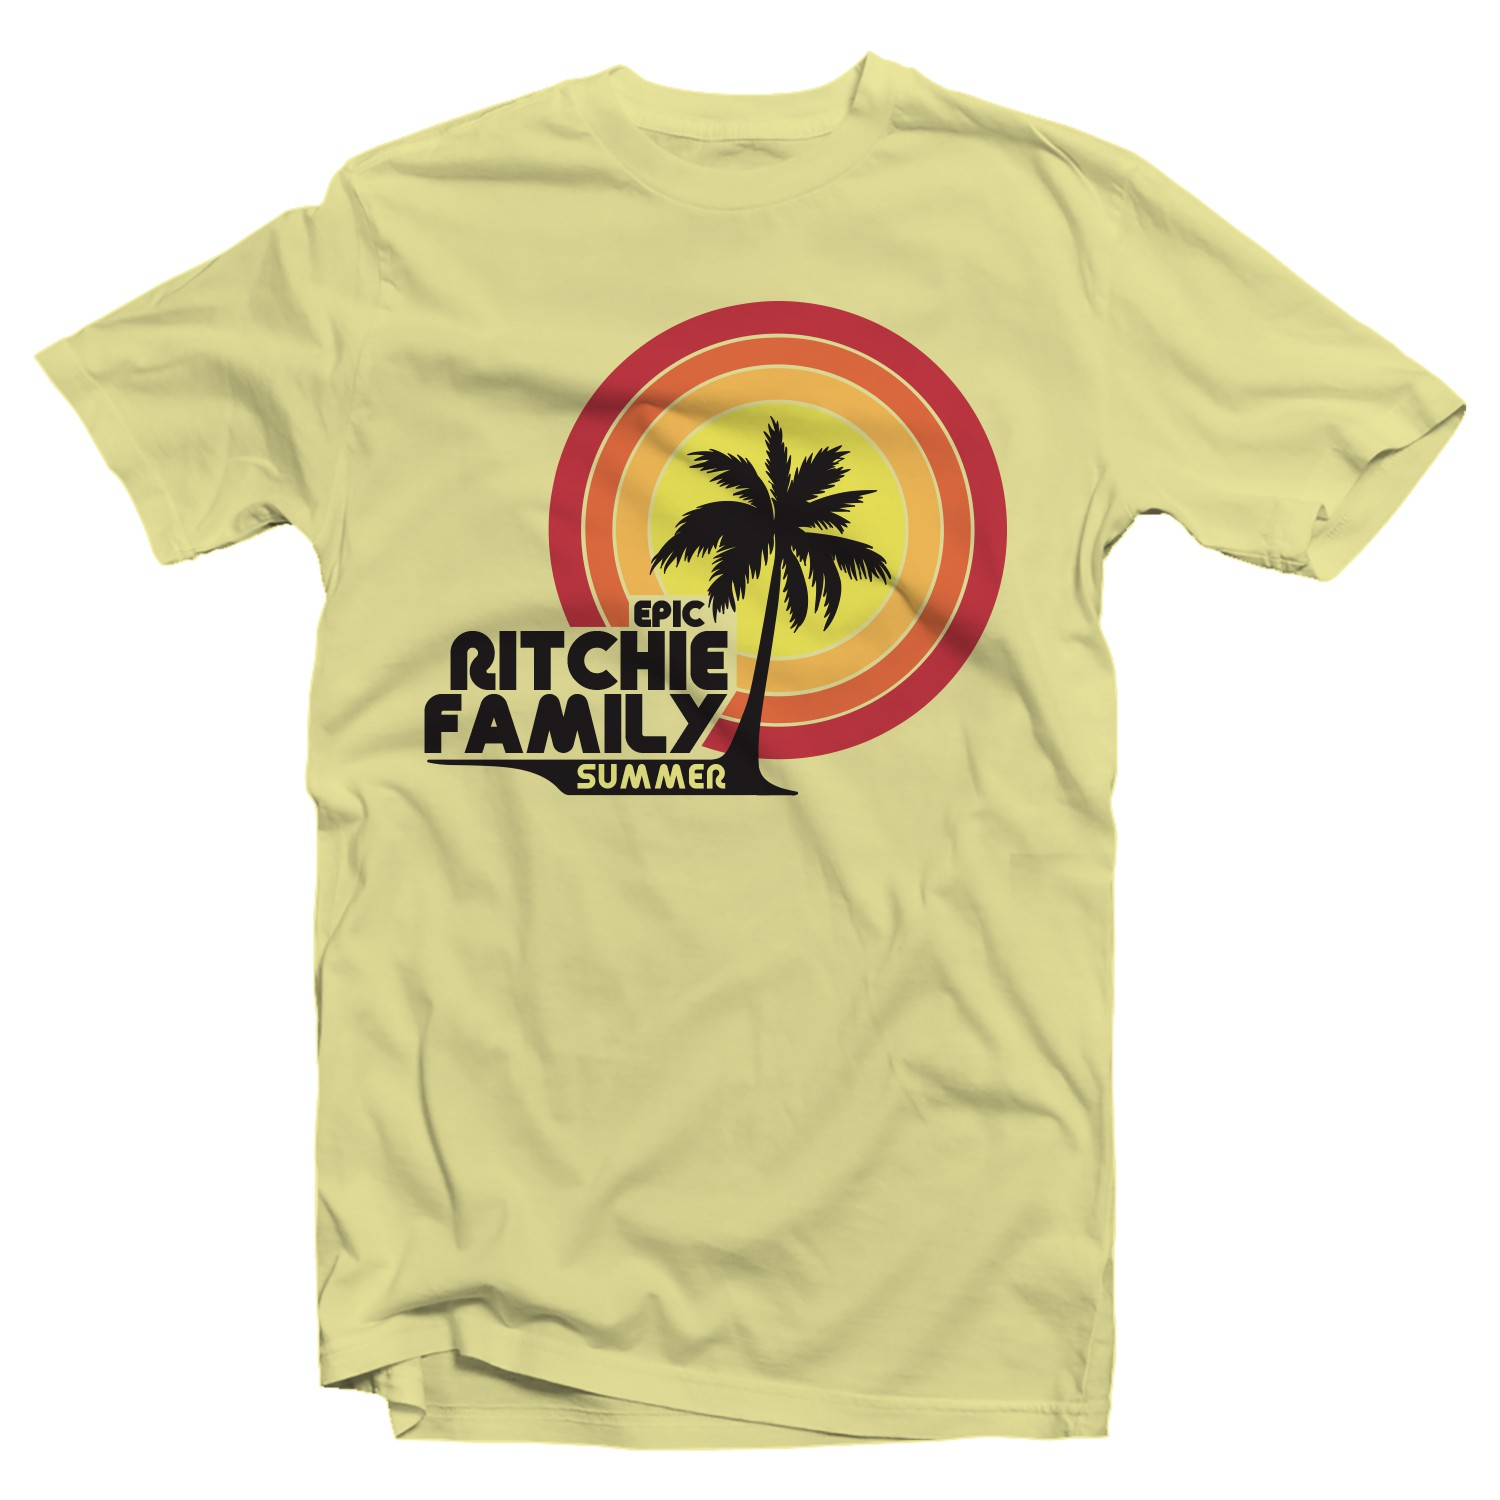 Epic Ritchie Family Summer shirts!